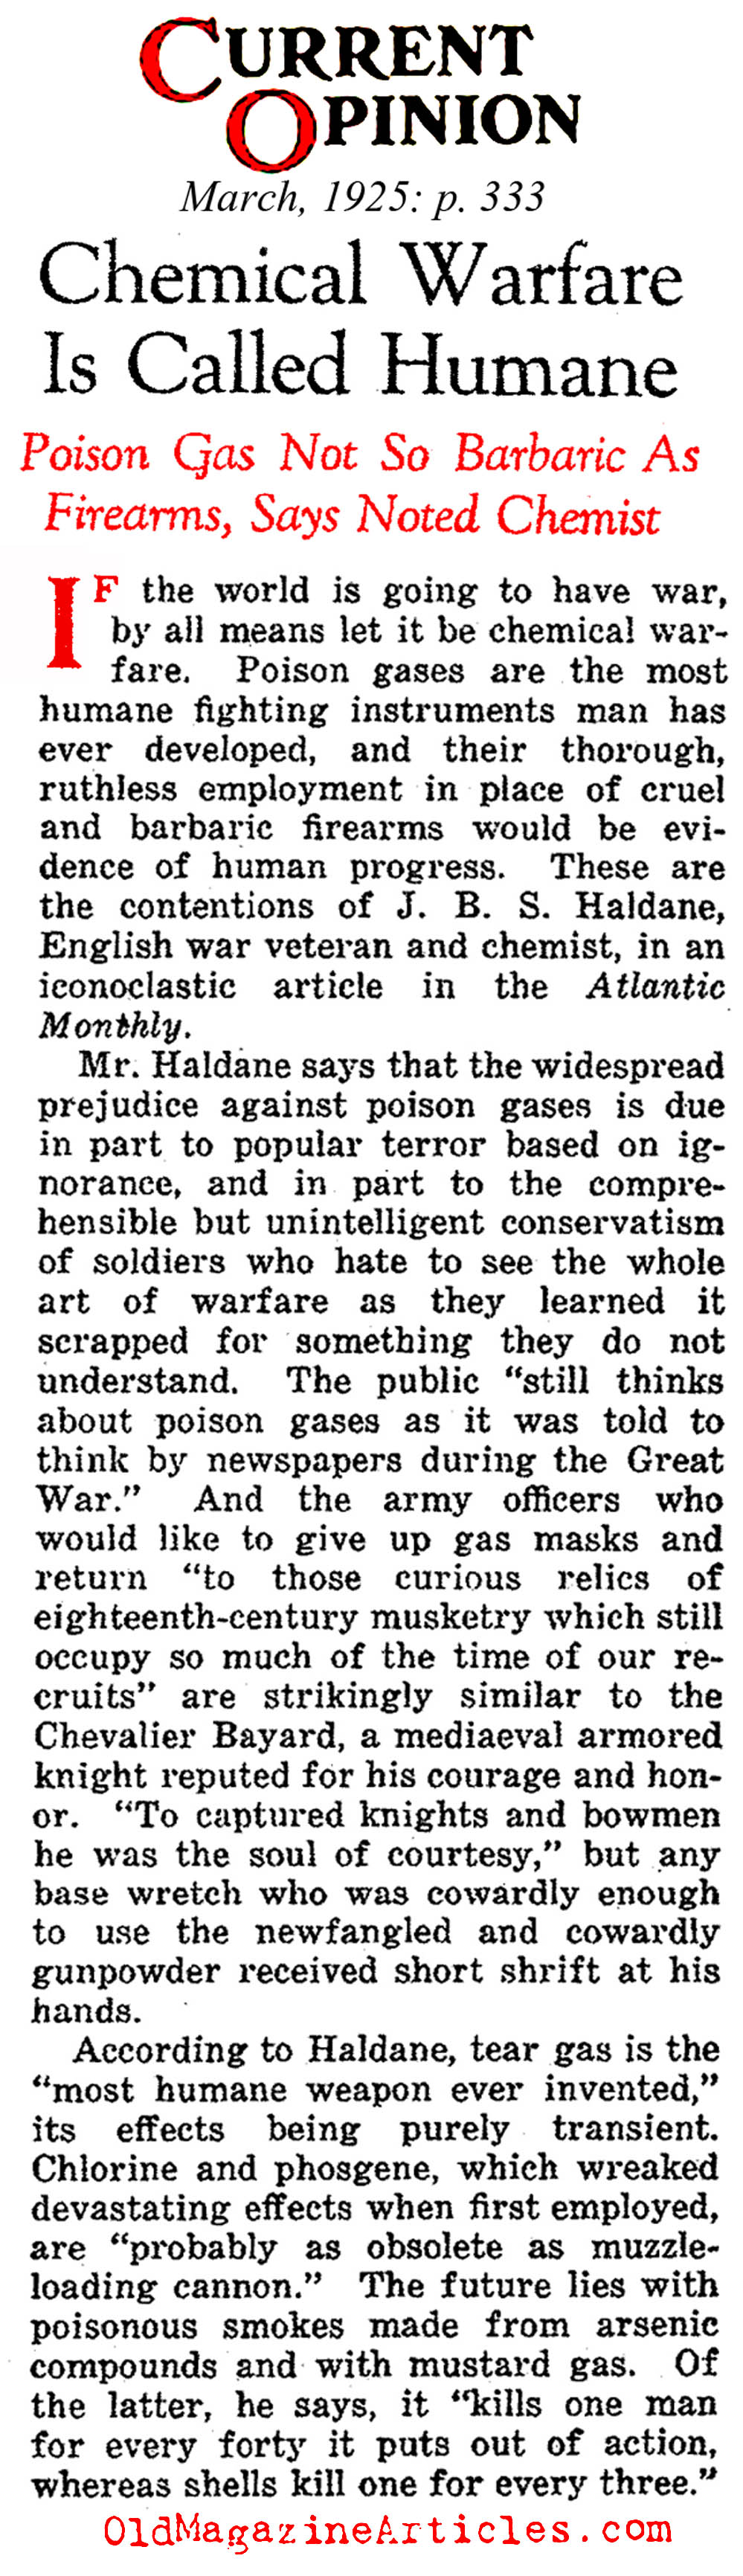 Reconsidering Poison Gas as a Weapon (Current Opinion, 1925)